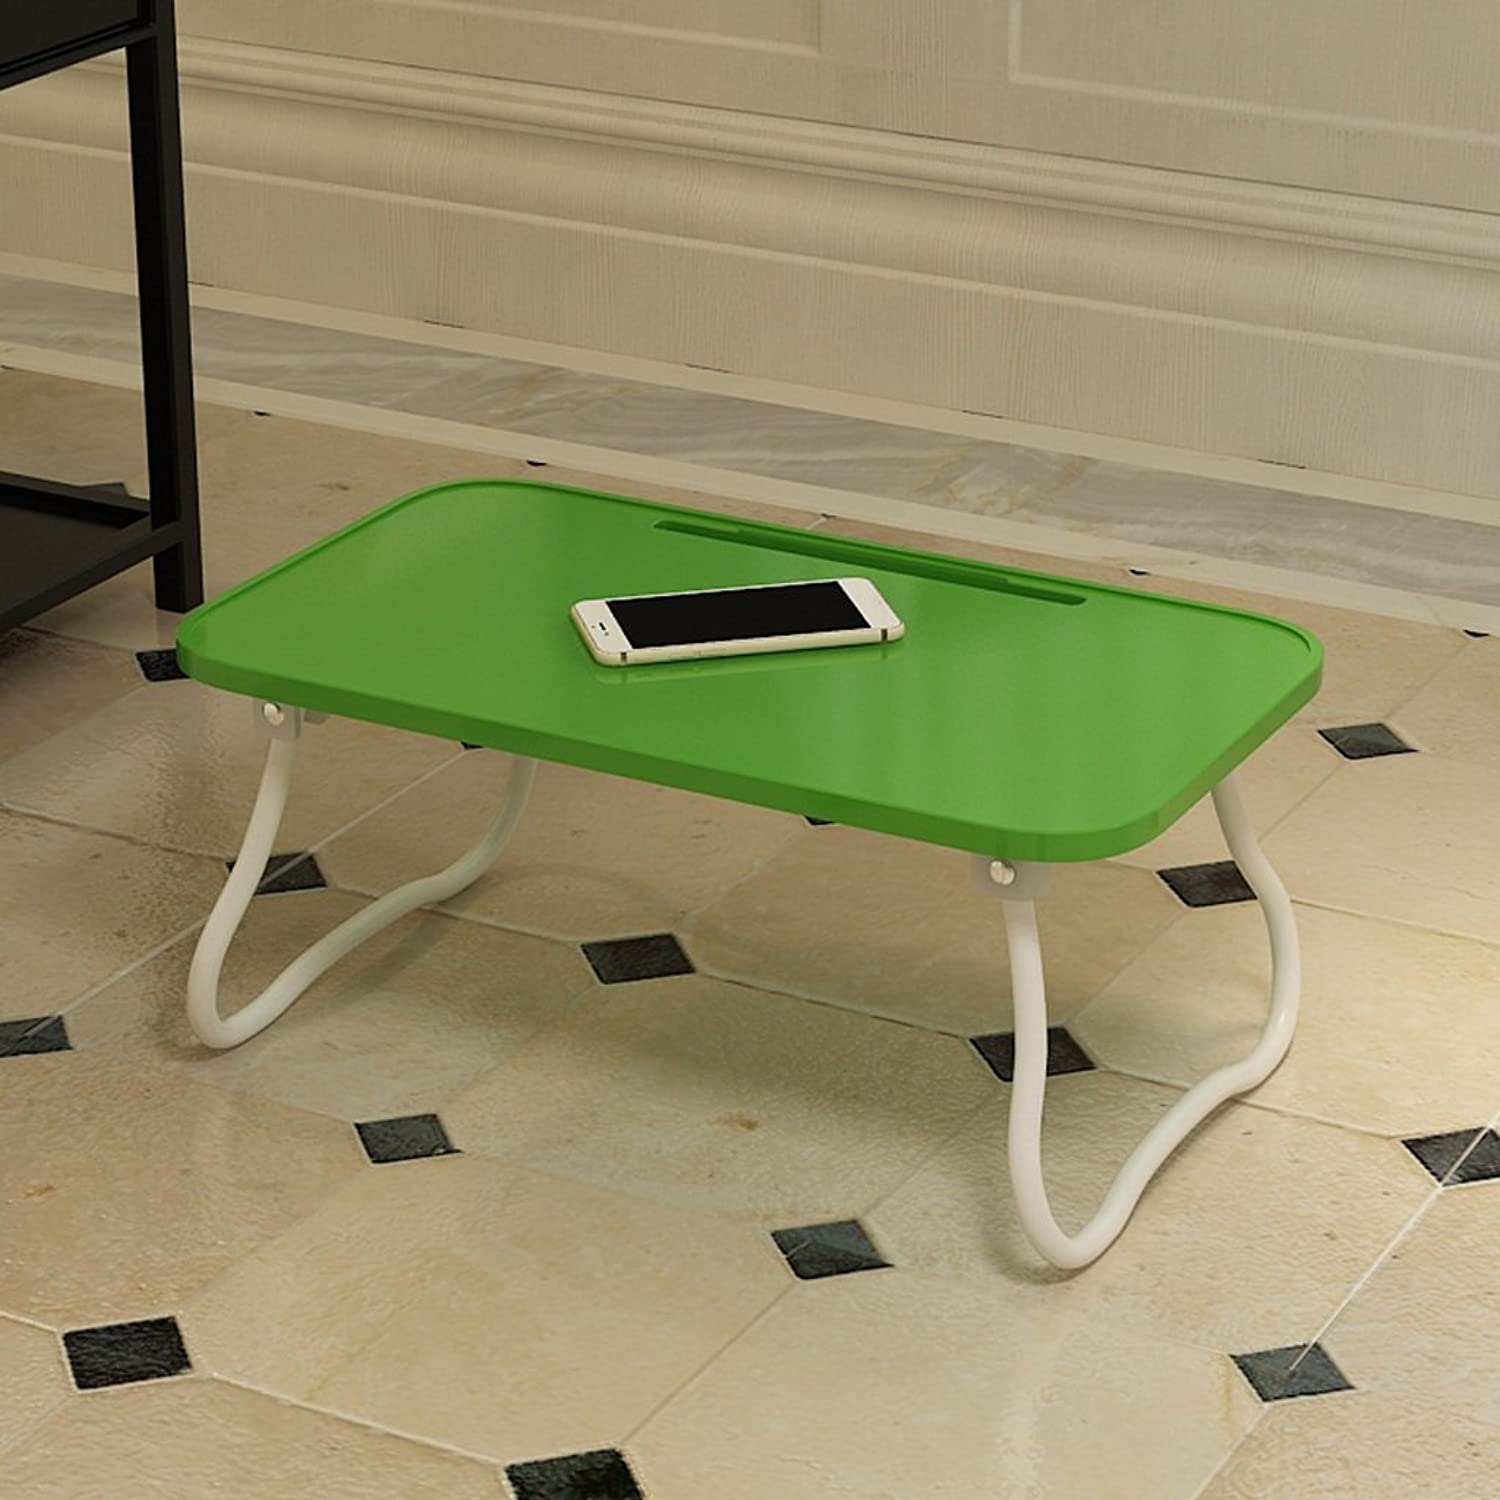 Home Dining Table Coffee Table White Green Yellow Black Rectangular Table  L54cm W 31cm  H23cm Multifunctional Learning Small Desk (color   Green)